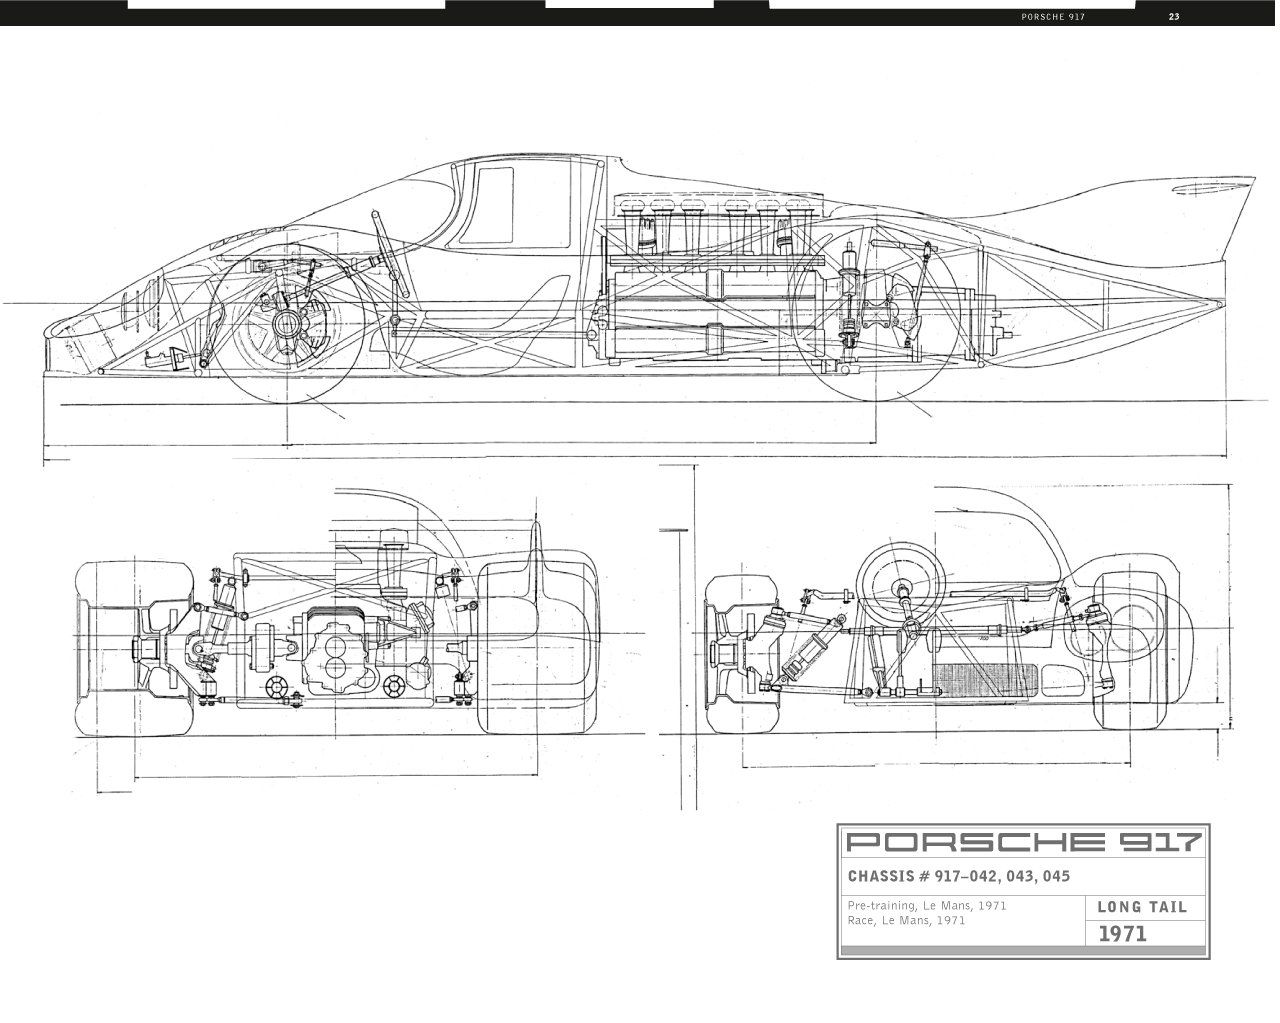 Porsche Drawings Diagrams Boxster Engine Diagram Amazon Fr 917 Archives And Works Catalogue 1968 1975 Rh Pinterest Com 2017 Gt3 Mechanical